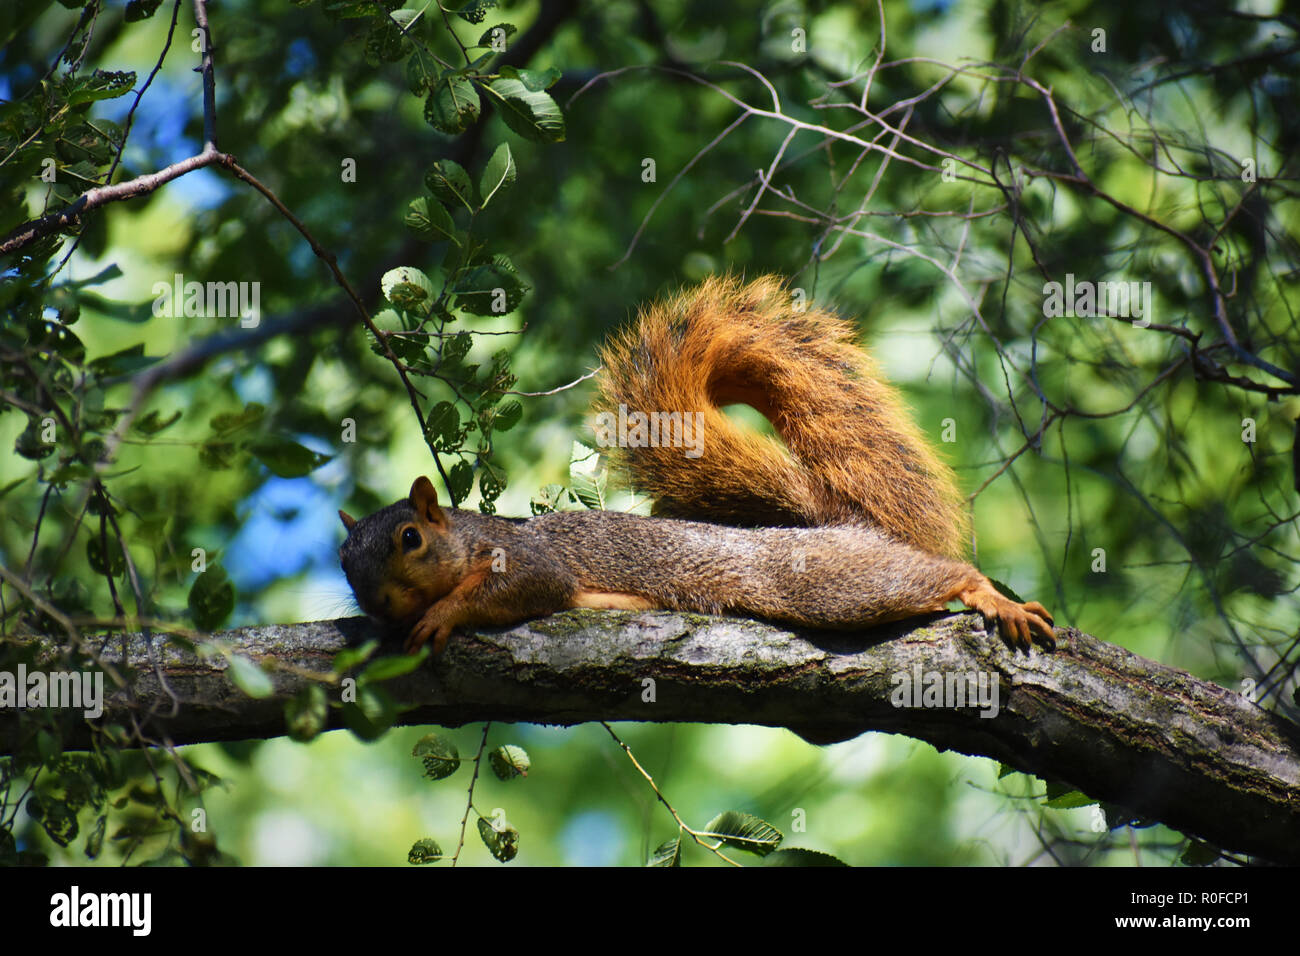 Fox squirrel (Sciurus niger) lounging on a tree limb with blurred green leaves in background - Stock Image